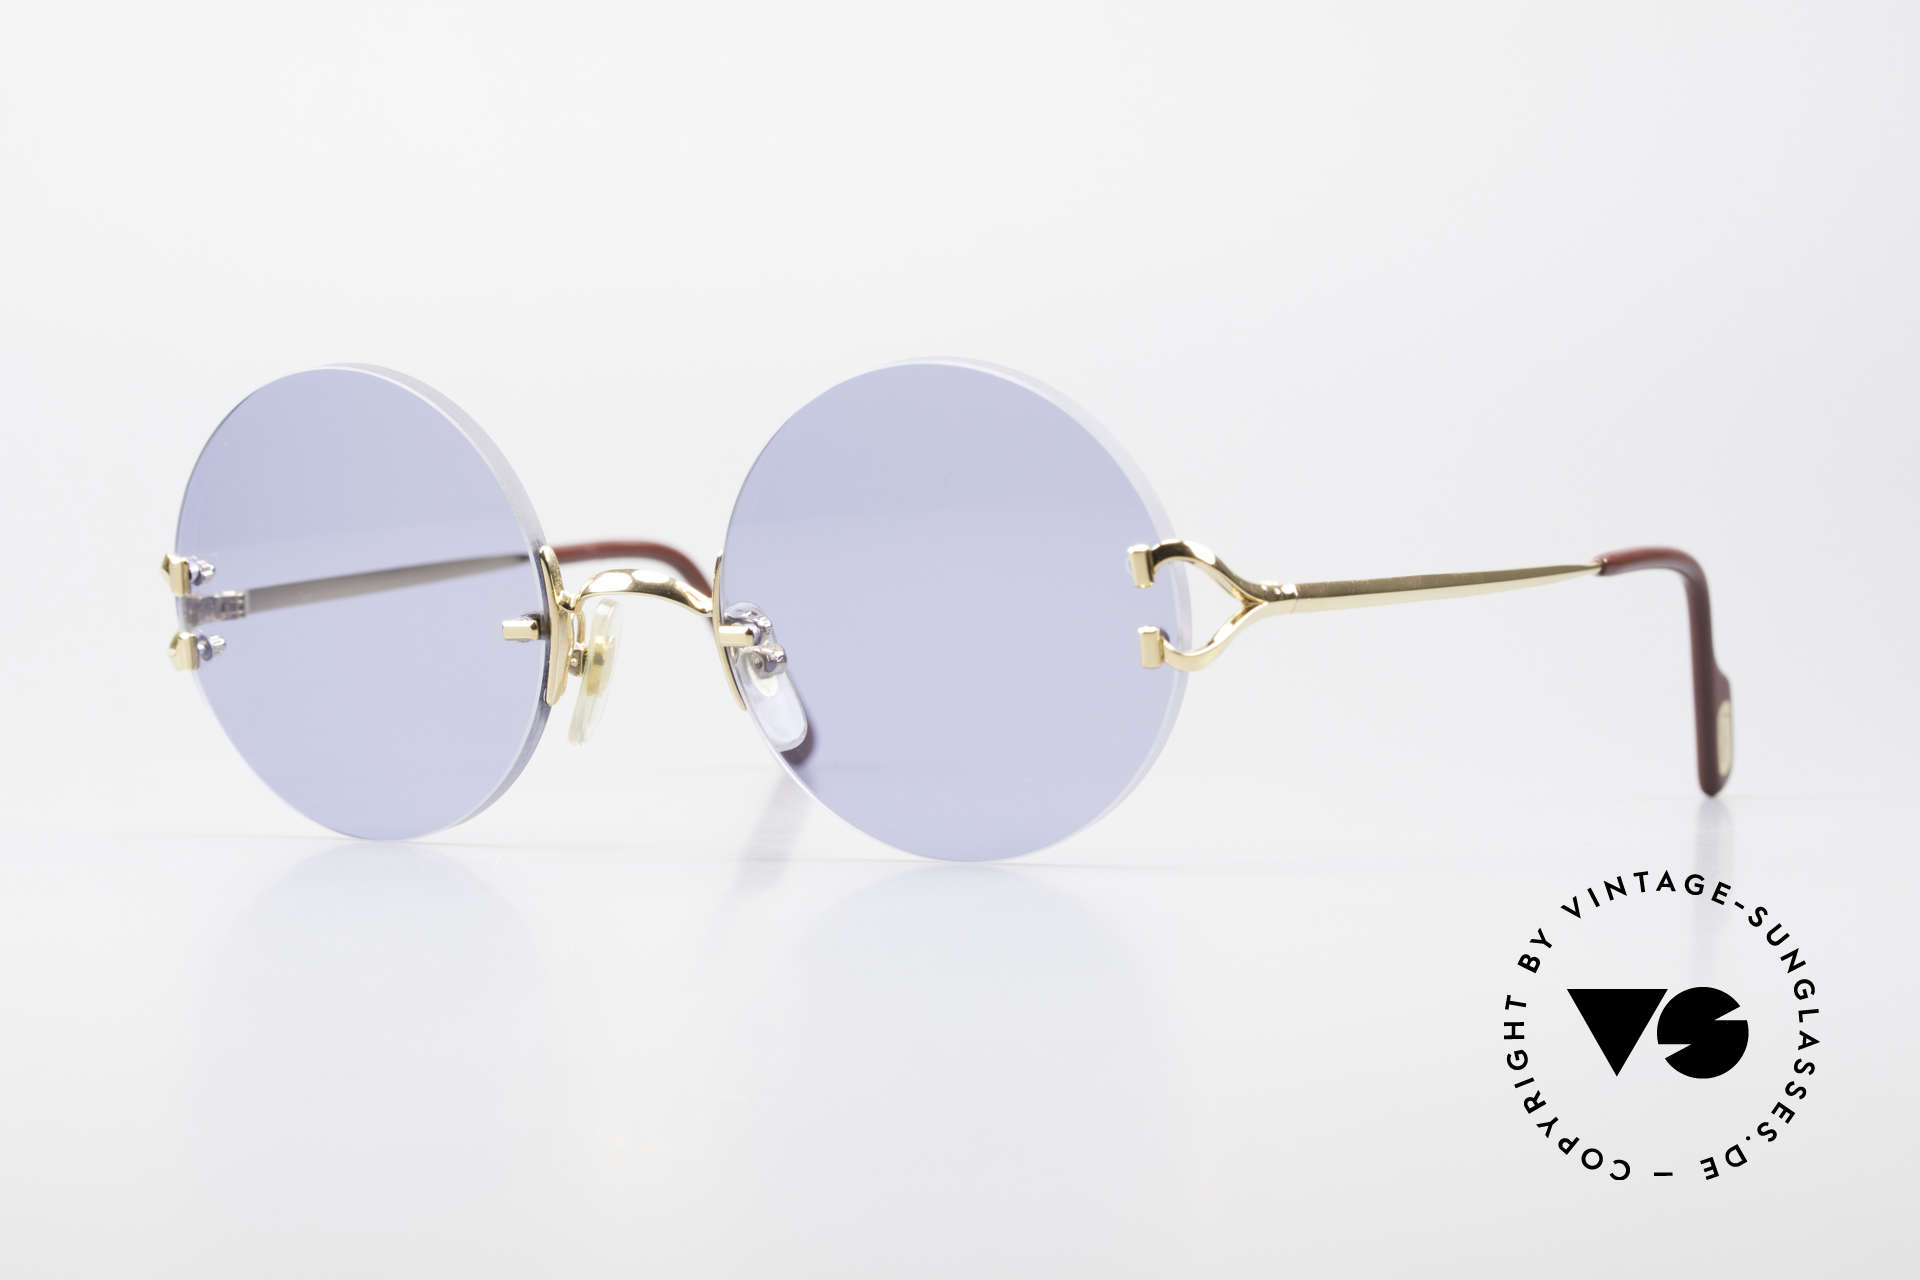 Cartier Madison Round Luxury Sunglasses 90's, noble rimless CARTIER luxury sunglasses from 1997, Made for Men and Women